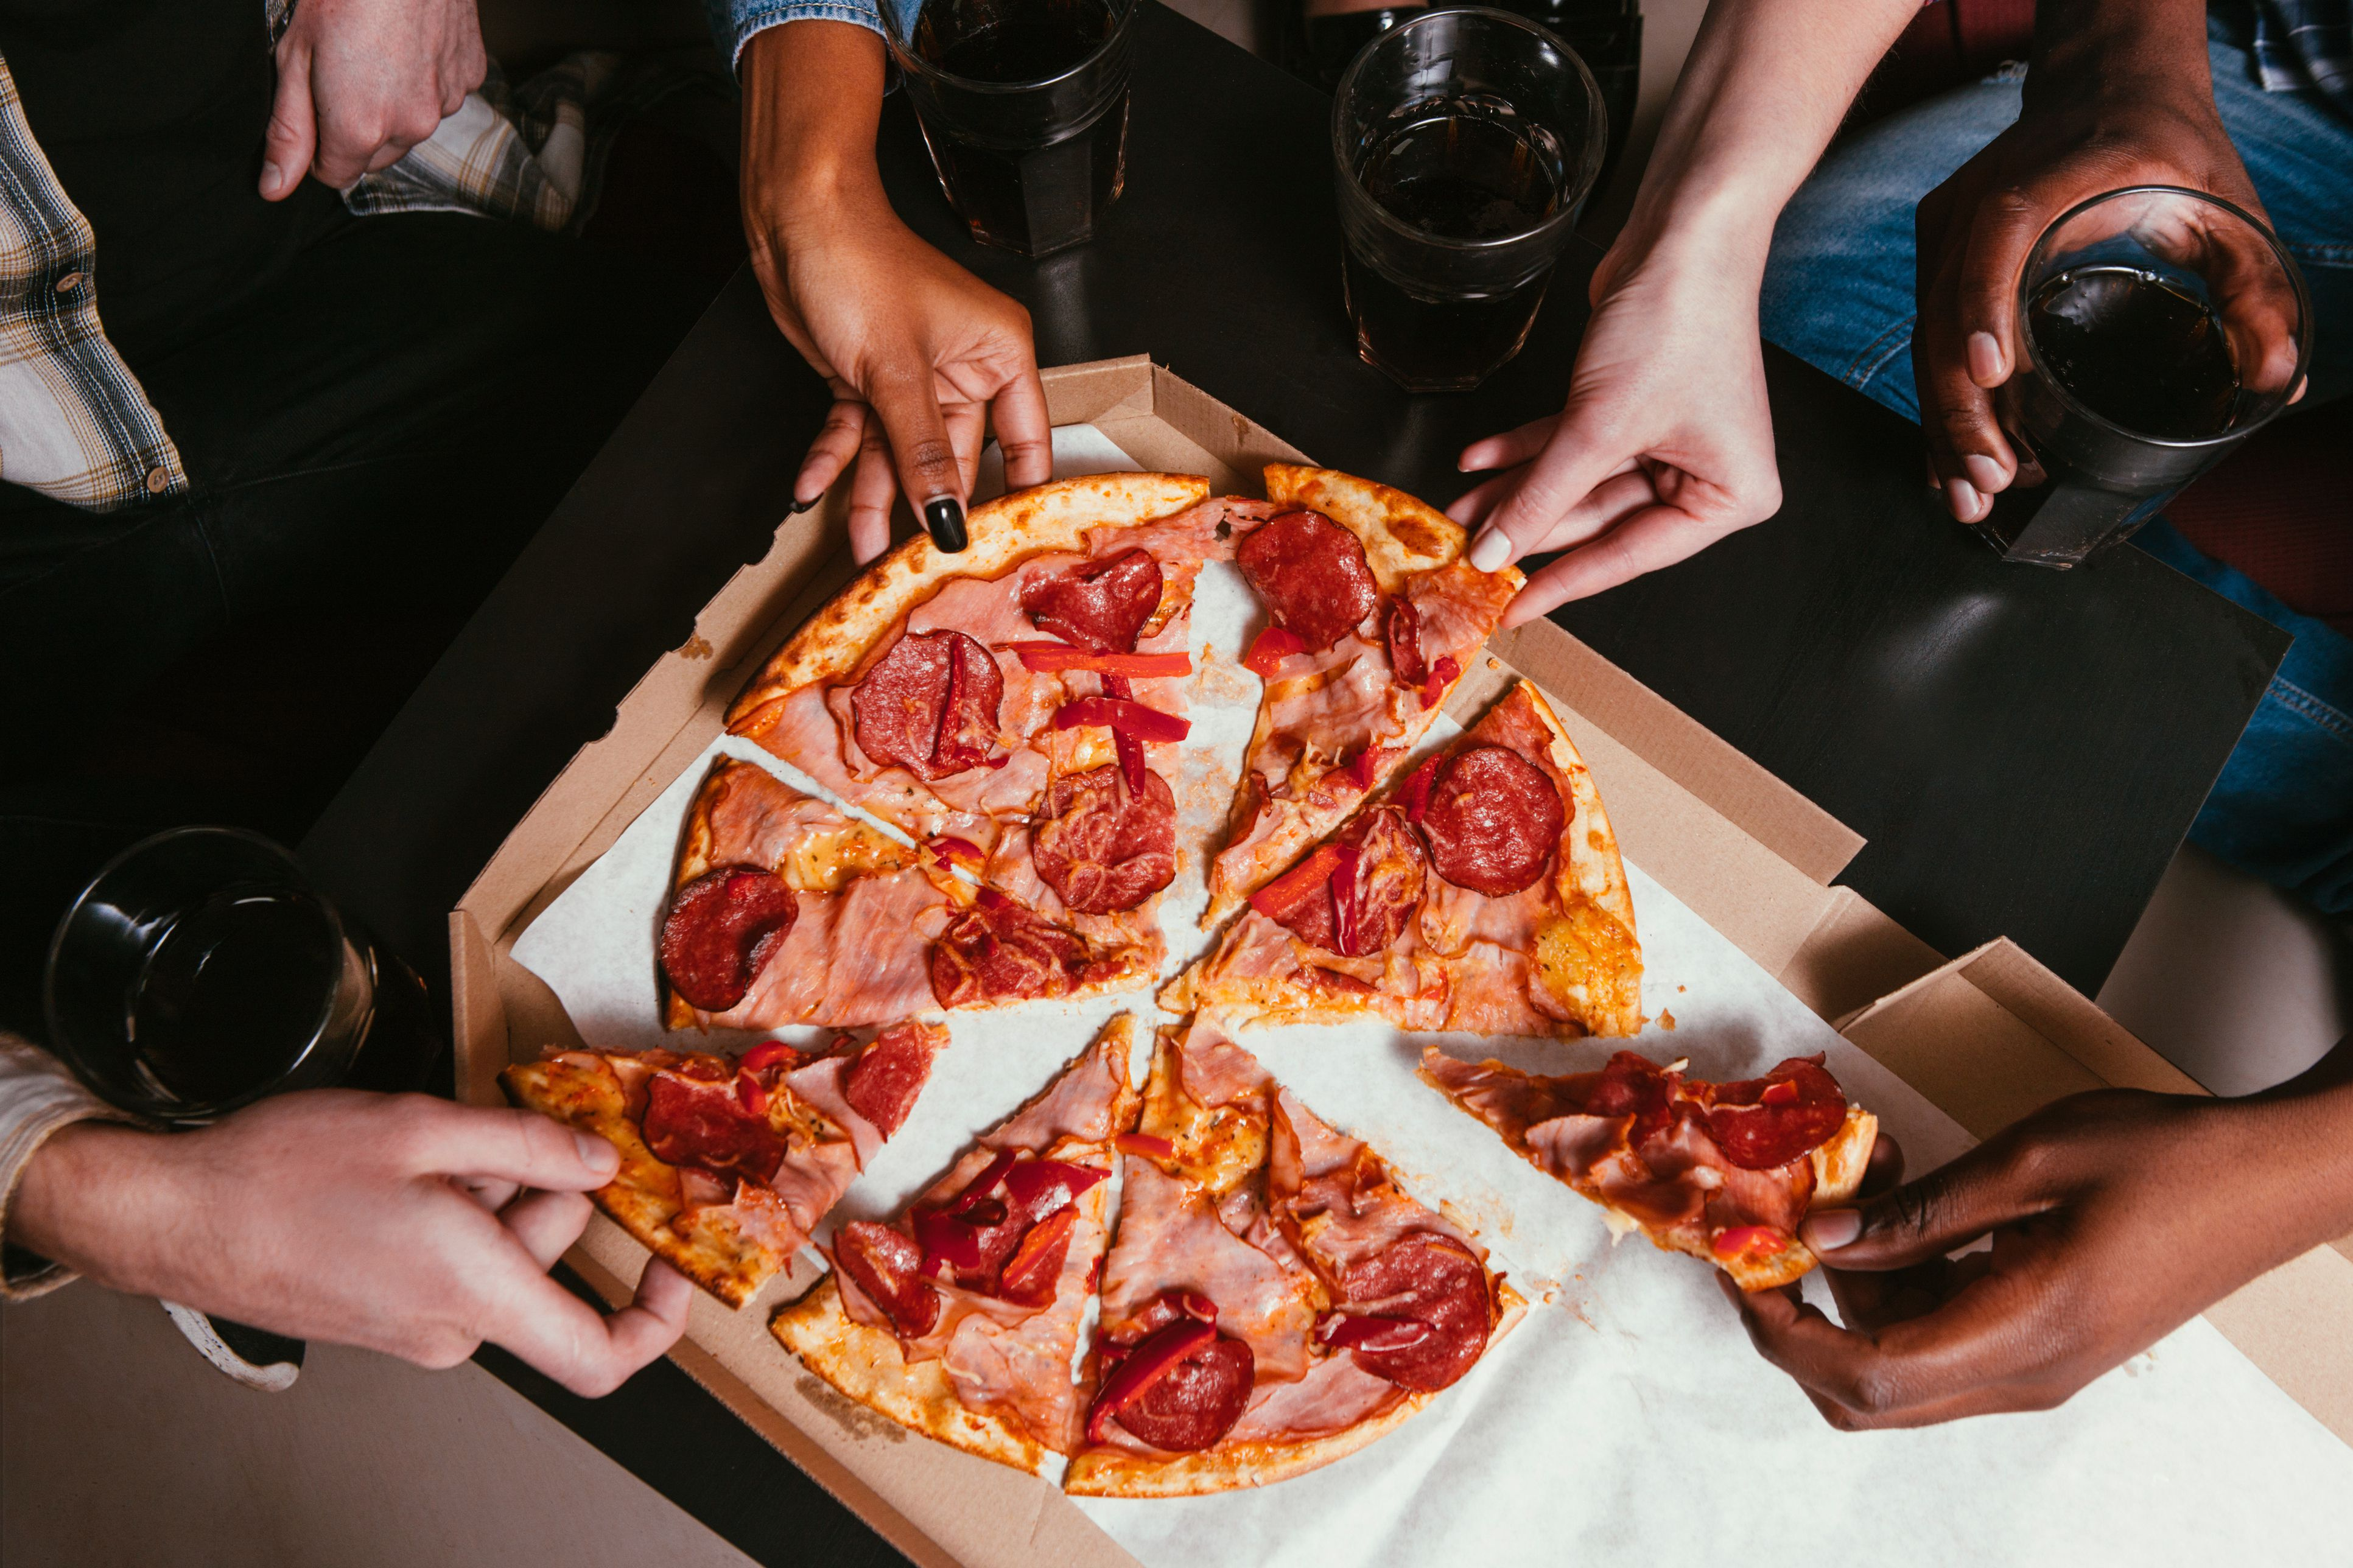 How Much To Tip Pizza Delivery Drivers - Round table small pizza price